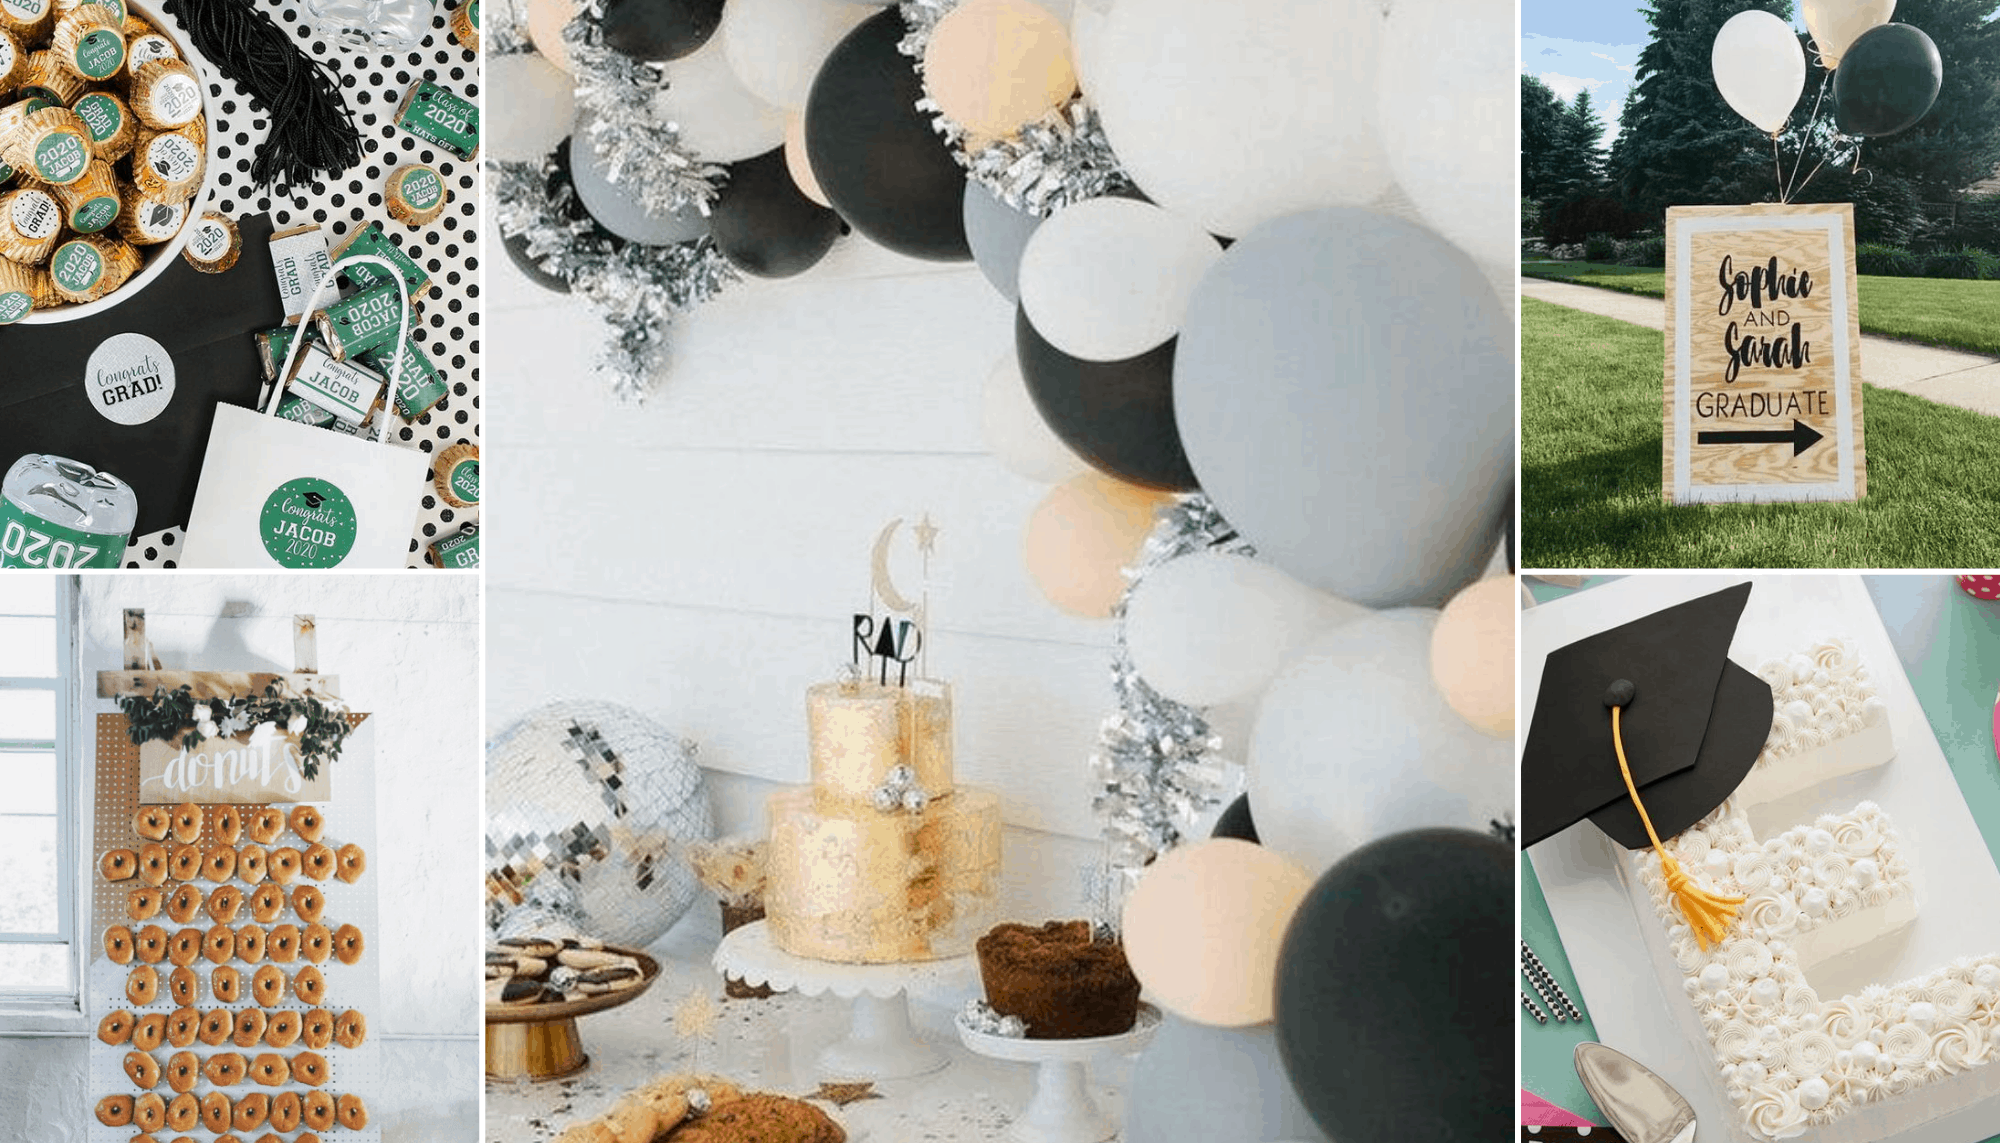 2021 high school graduation party ideas